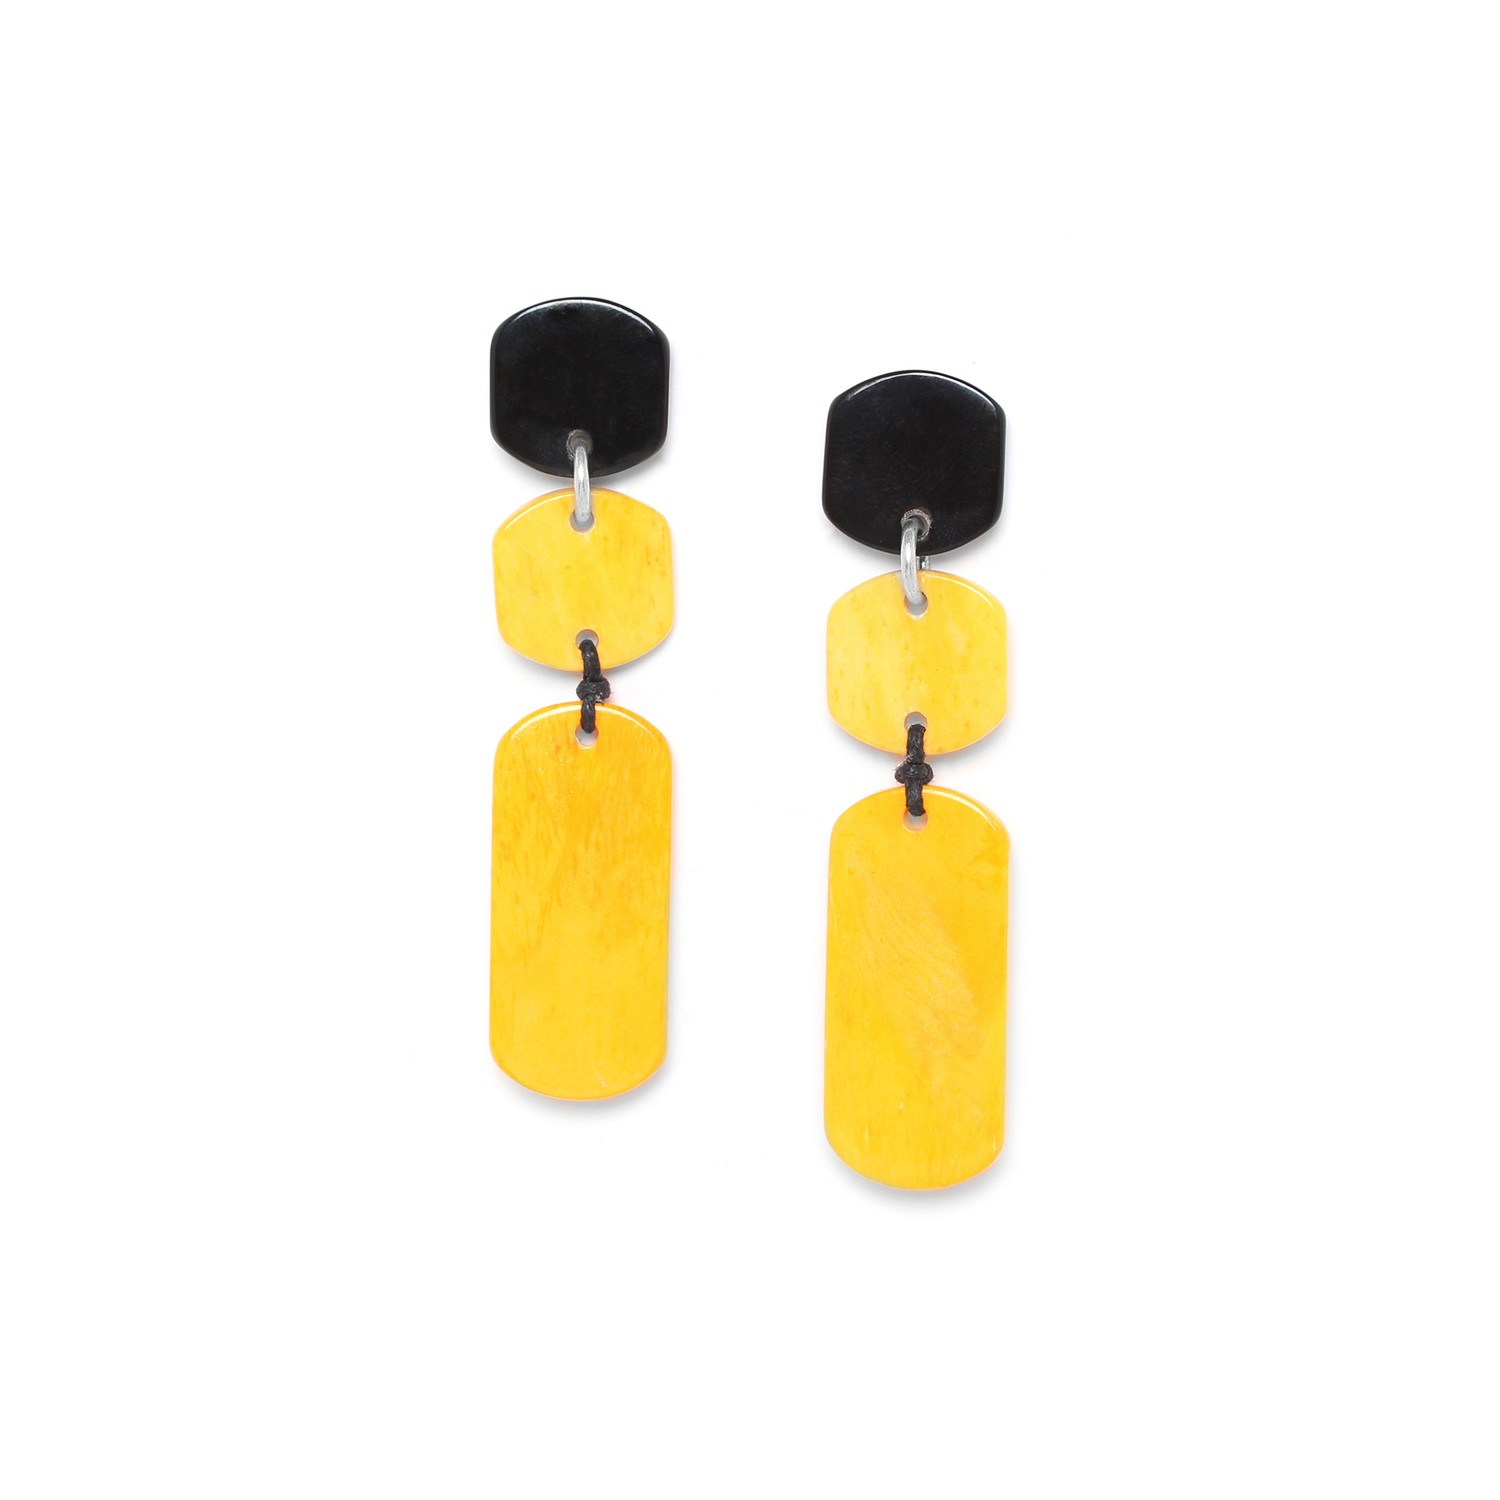 BLACK MANGO 3 elements earrings